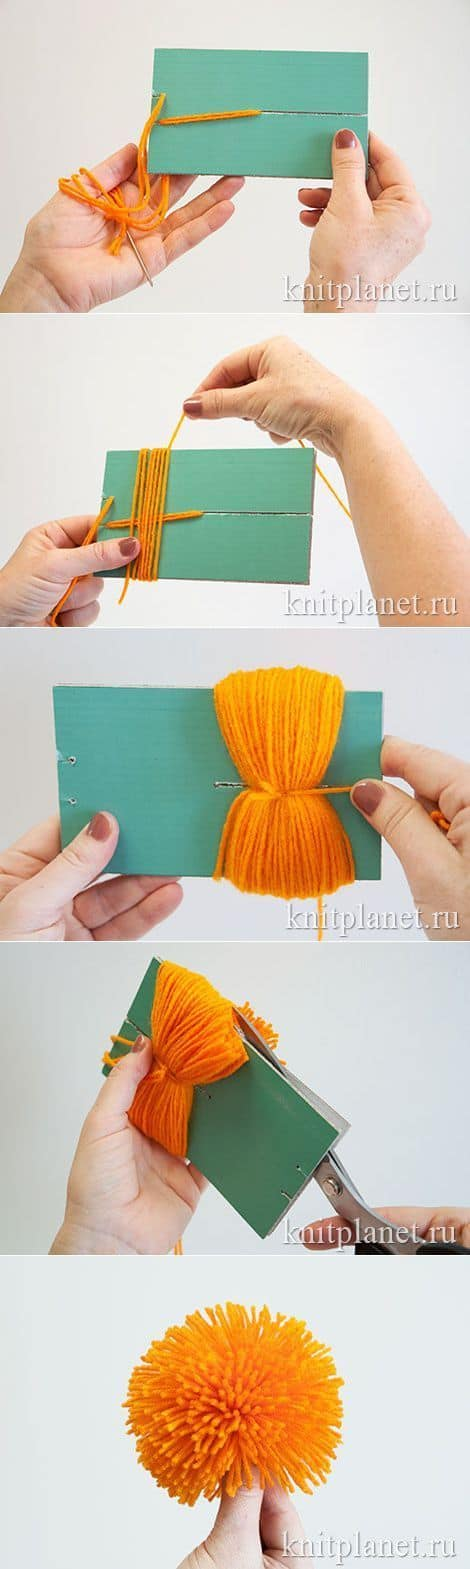 36. CARDBOARD TO POM POM TECHNIQUE